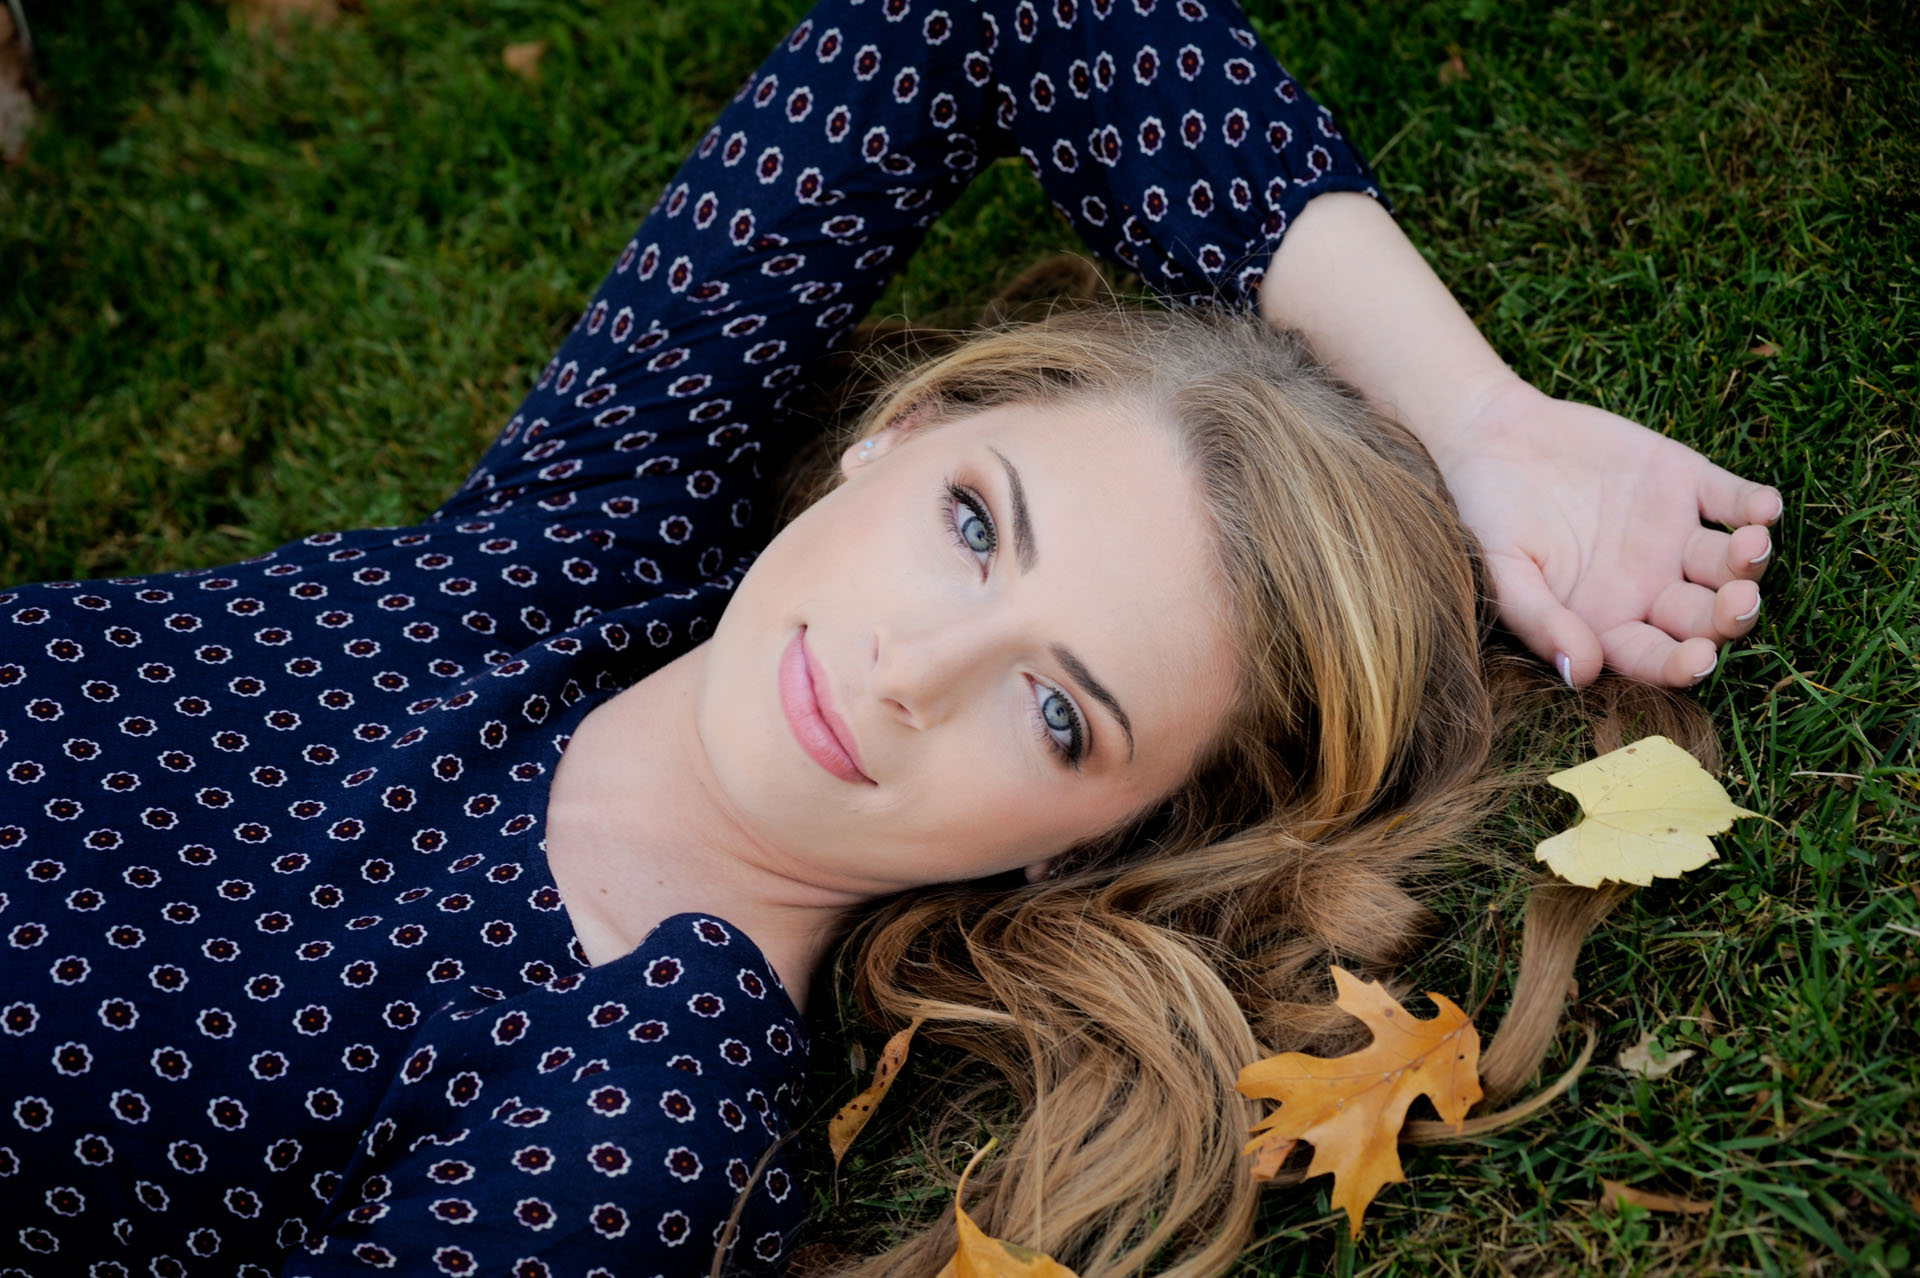 Troy, Michigan senior photos of a high school senior playing with leaves during her Troy Senior Photo shoot.